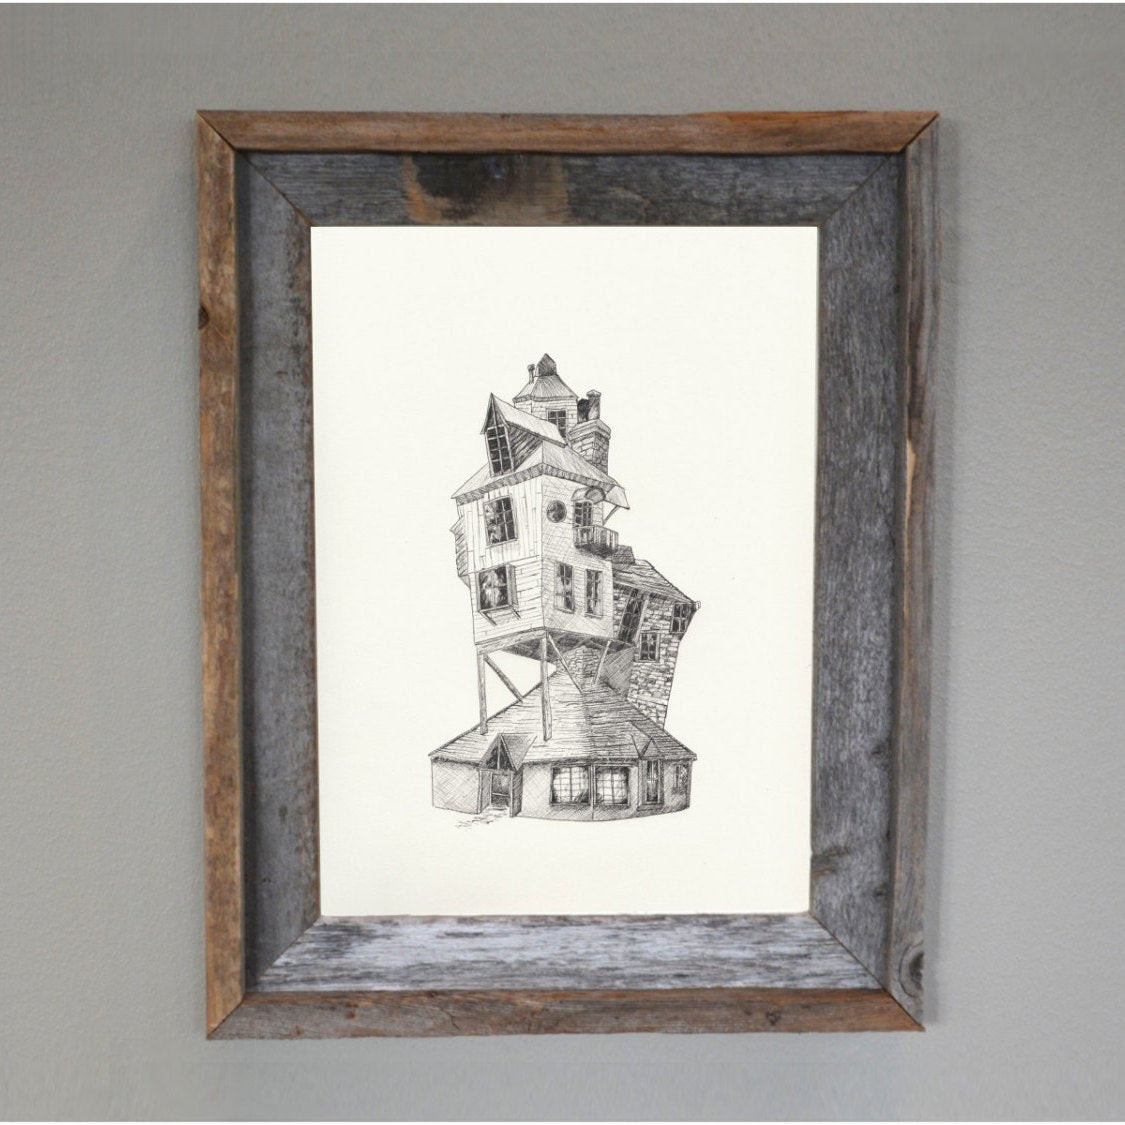 Best ideas about Harry Potter Wall Art . Save or Pin Harry Potter Harry Potter Wall Art Weasley House The Burrow Now.